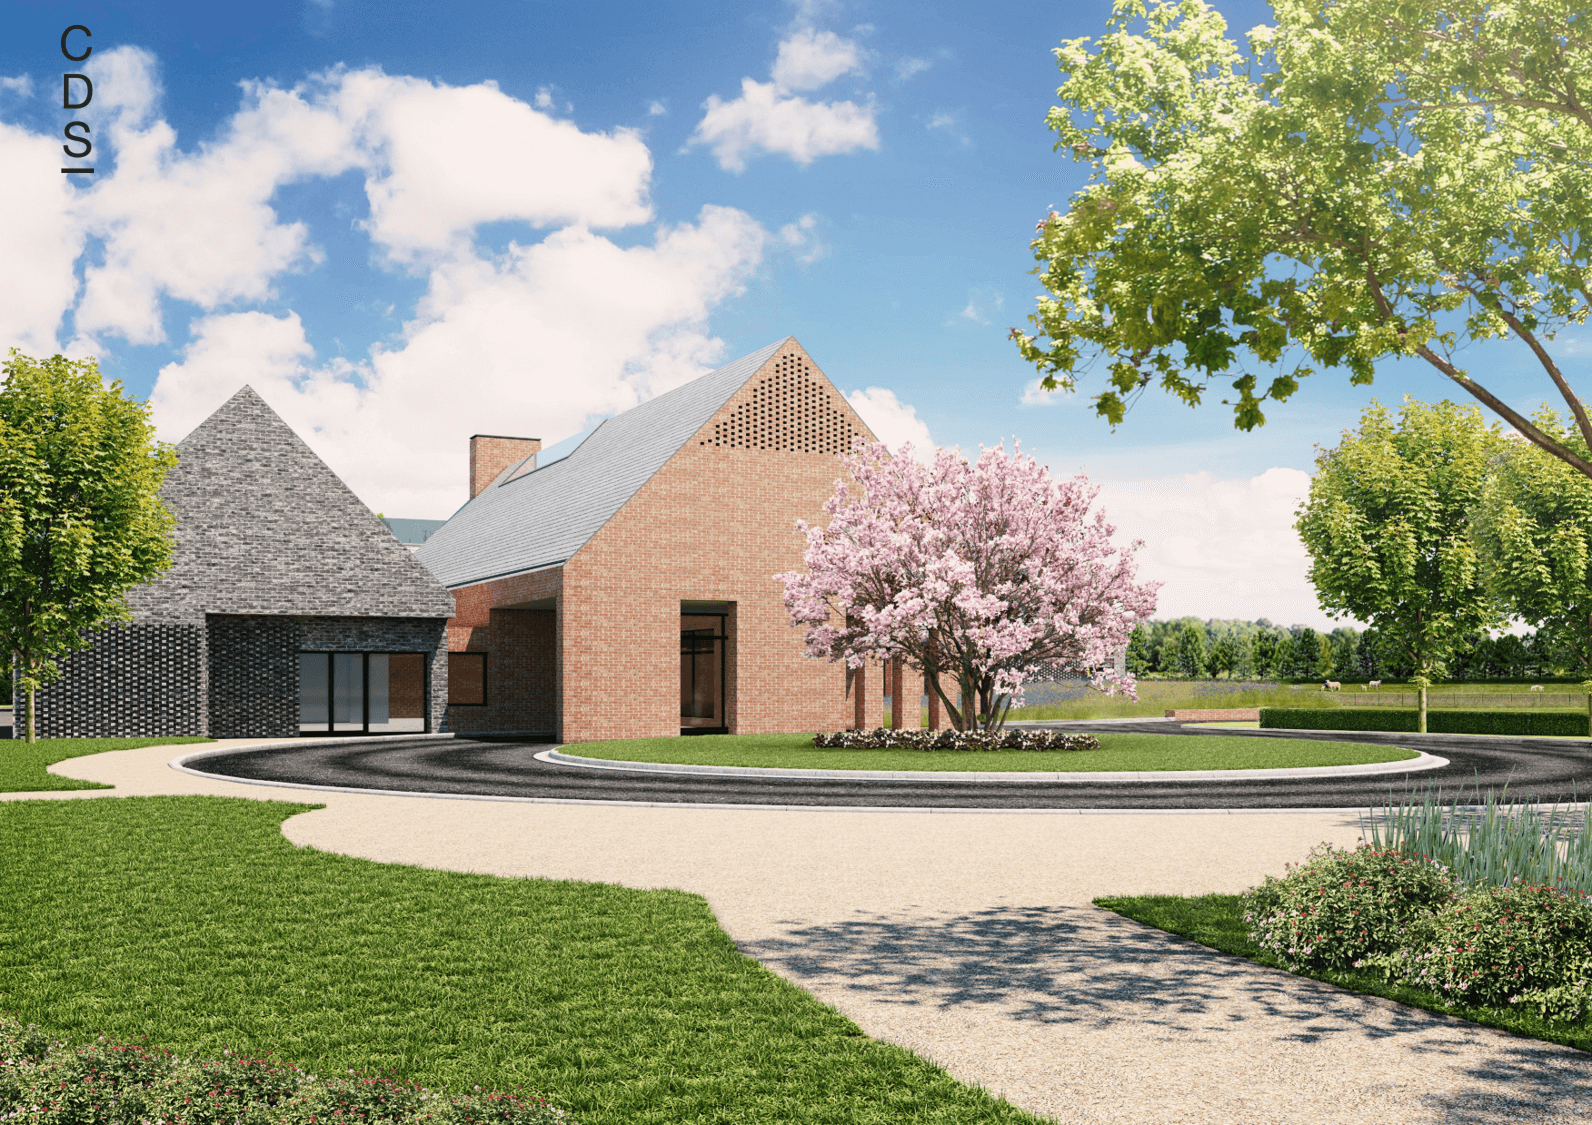 The CDS Group, Hambleton Crematorium Design with Electric Cremators, Green Agenda